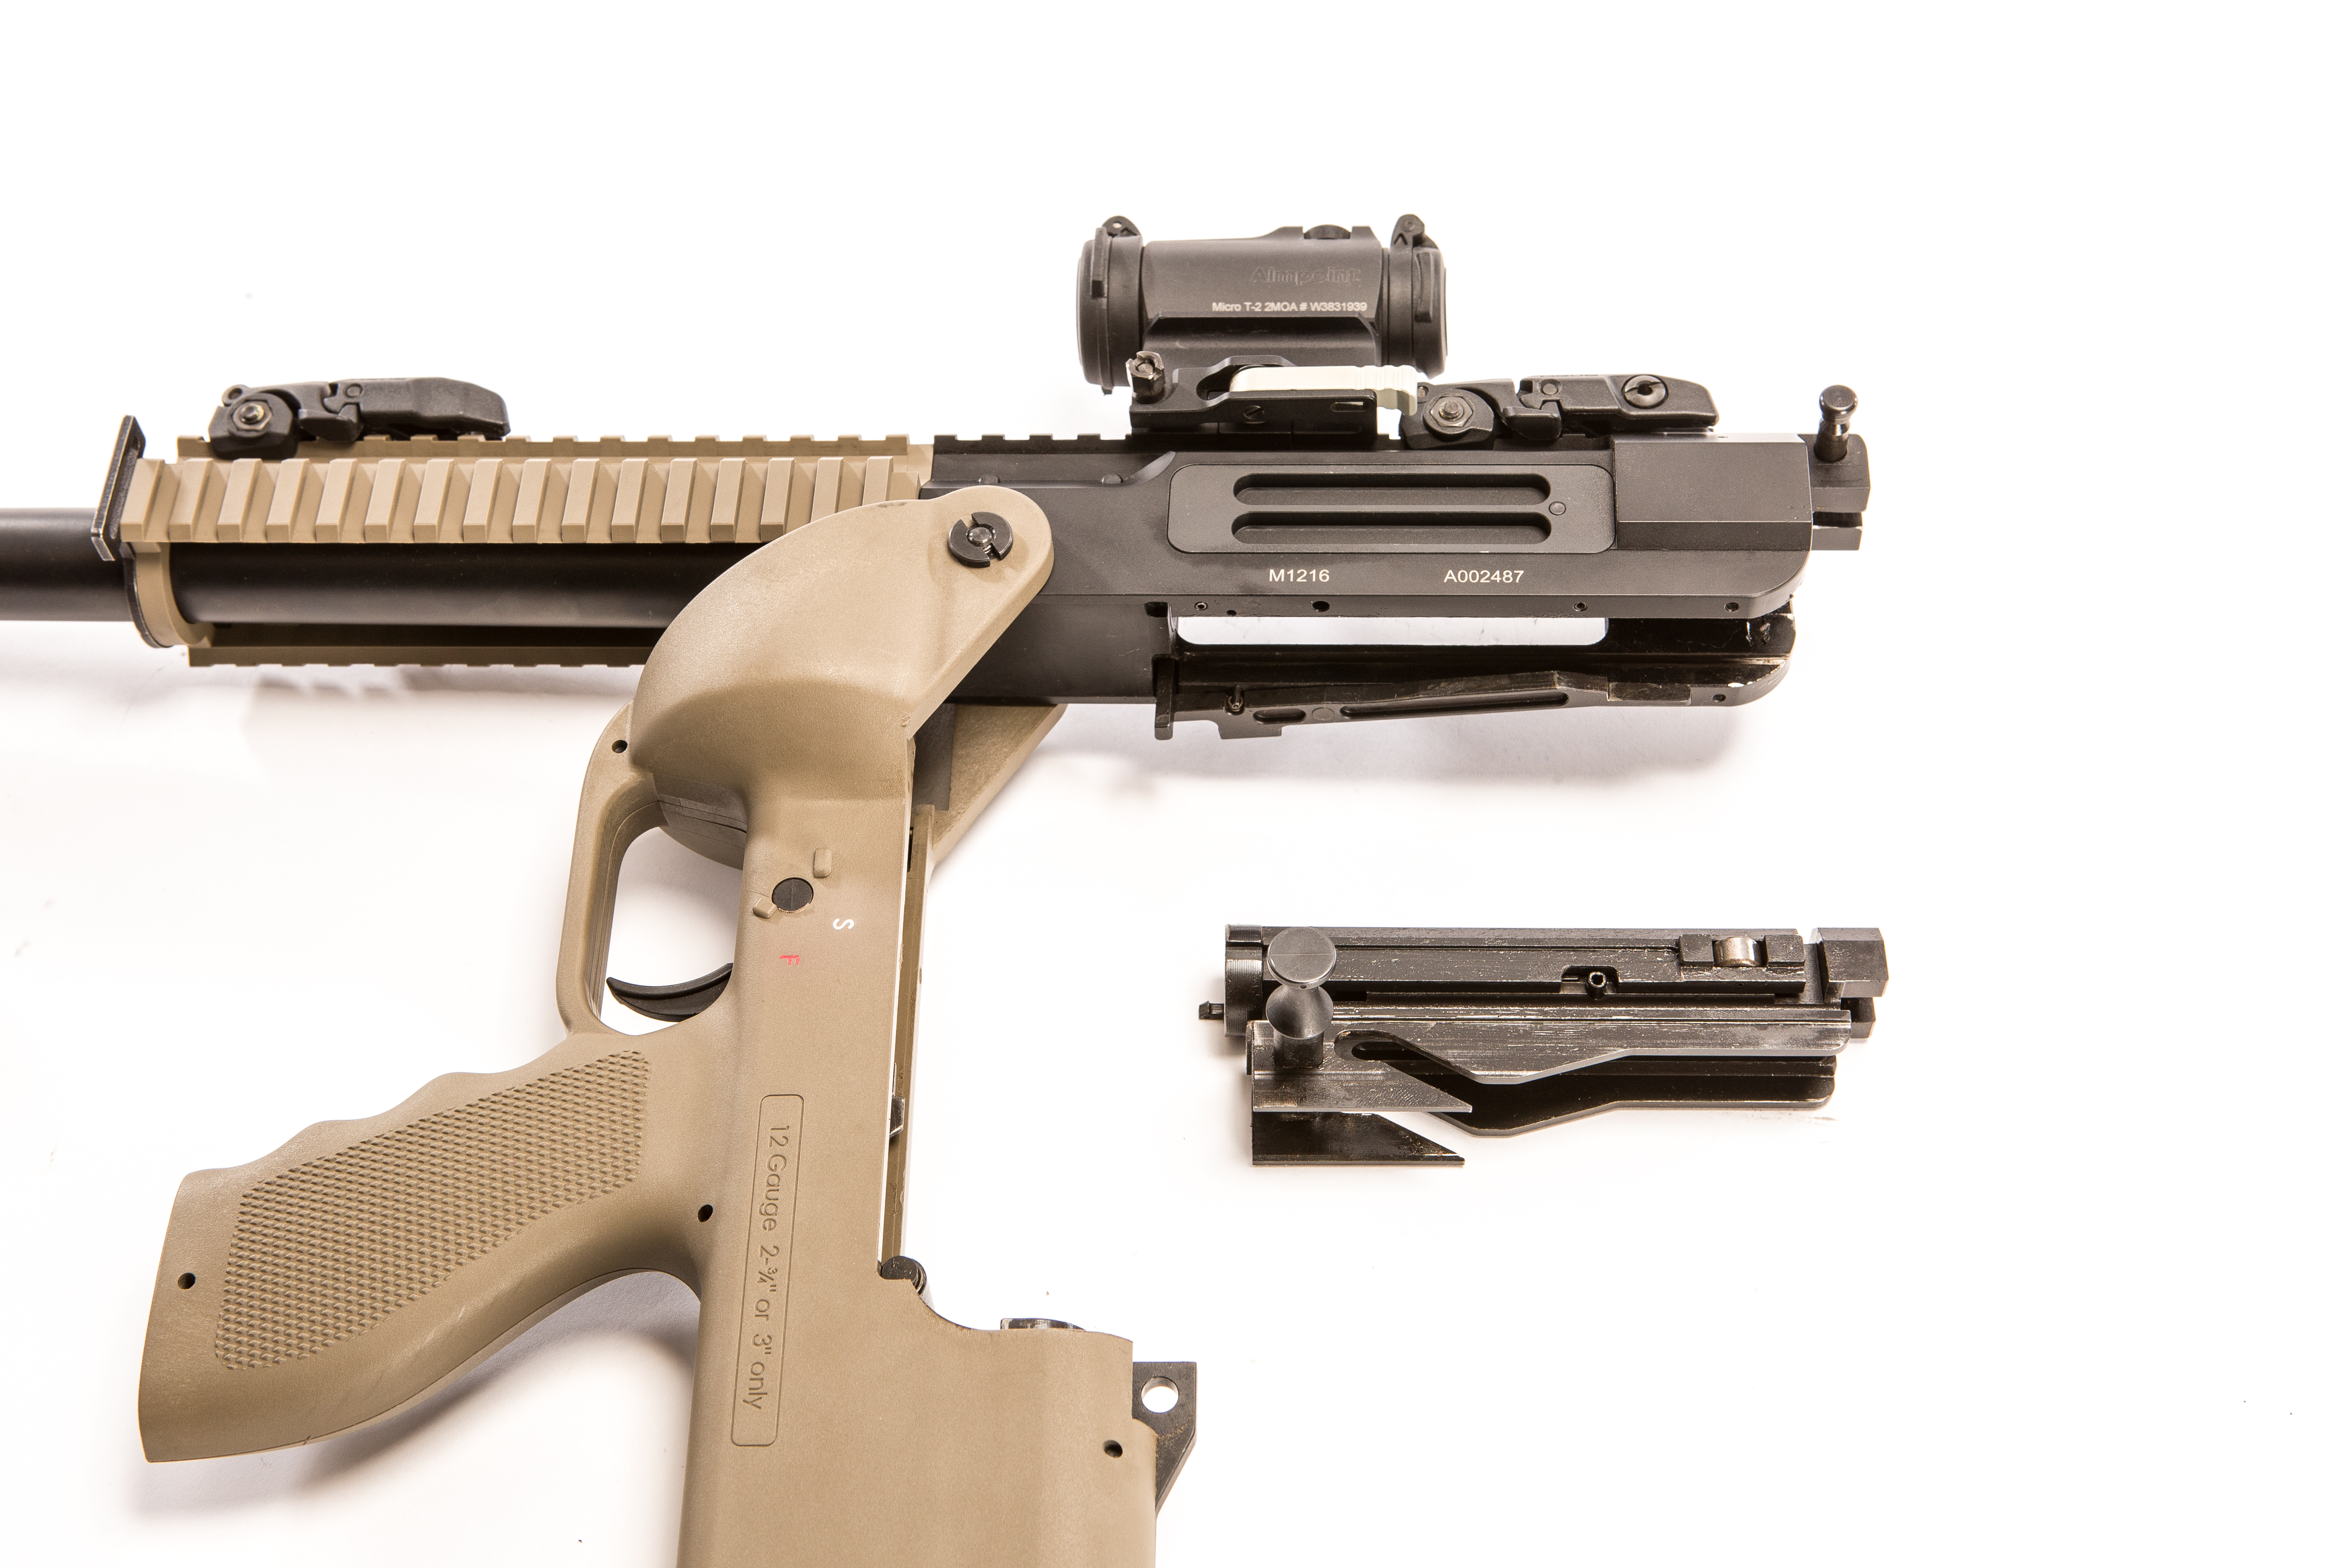 SRM 1216 hinged open for cleaning. Disassembly is similar to that of an AR-15-type rifle.